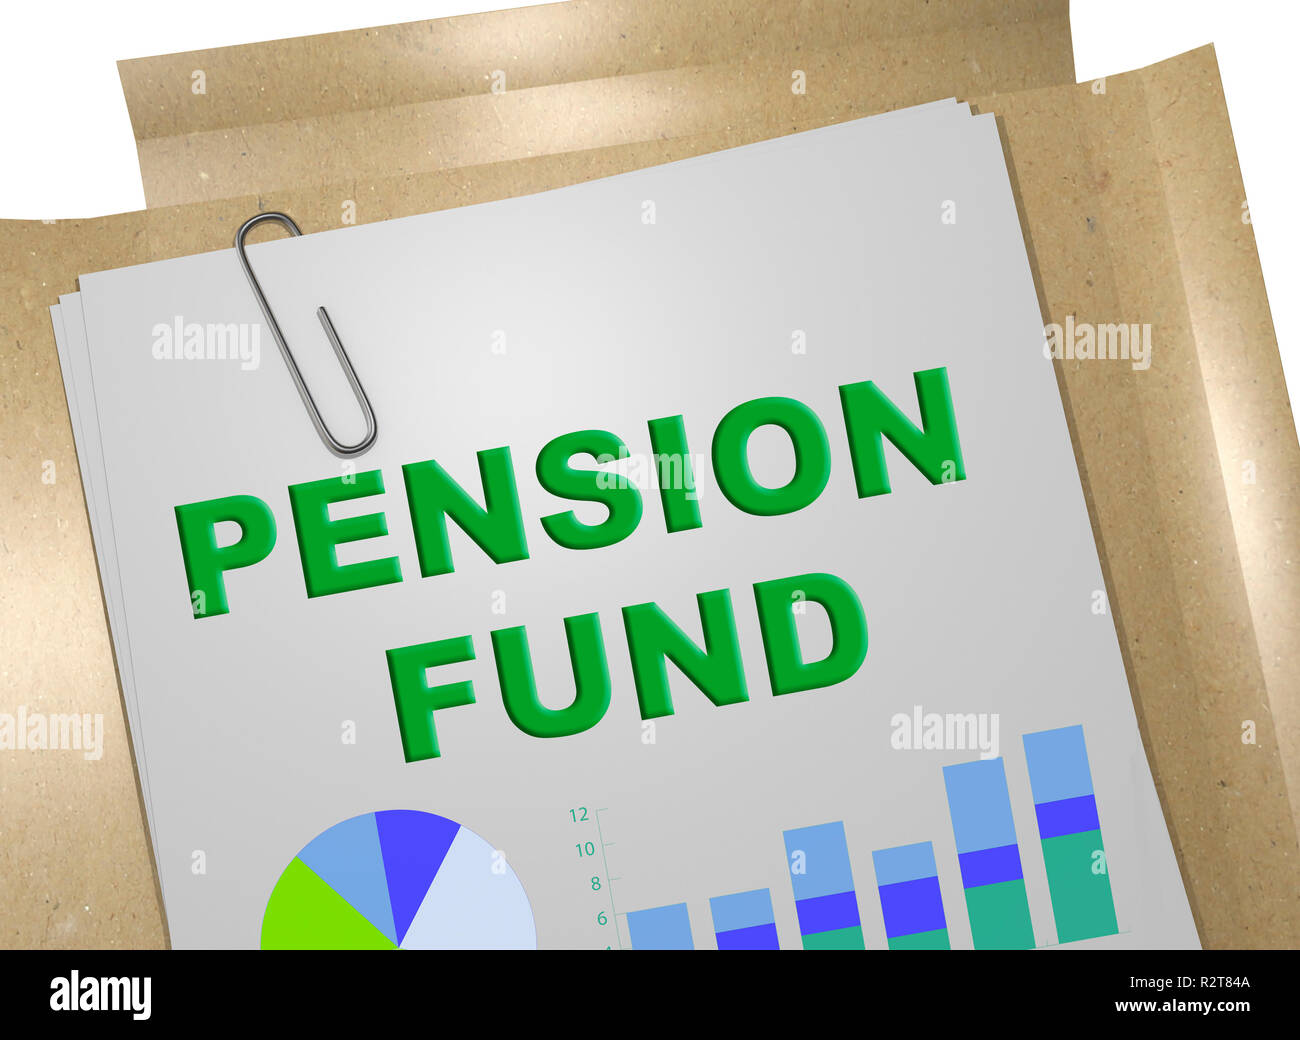 pension fund stock photos pension fund stock images alamy. Black Bedroom Furniture Sets. Home Design Ideas